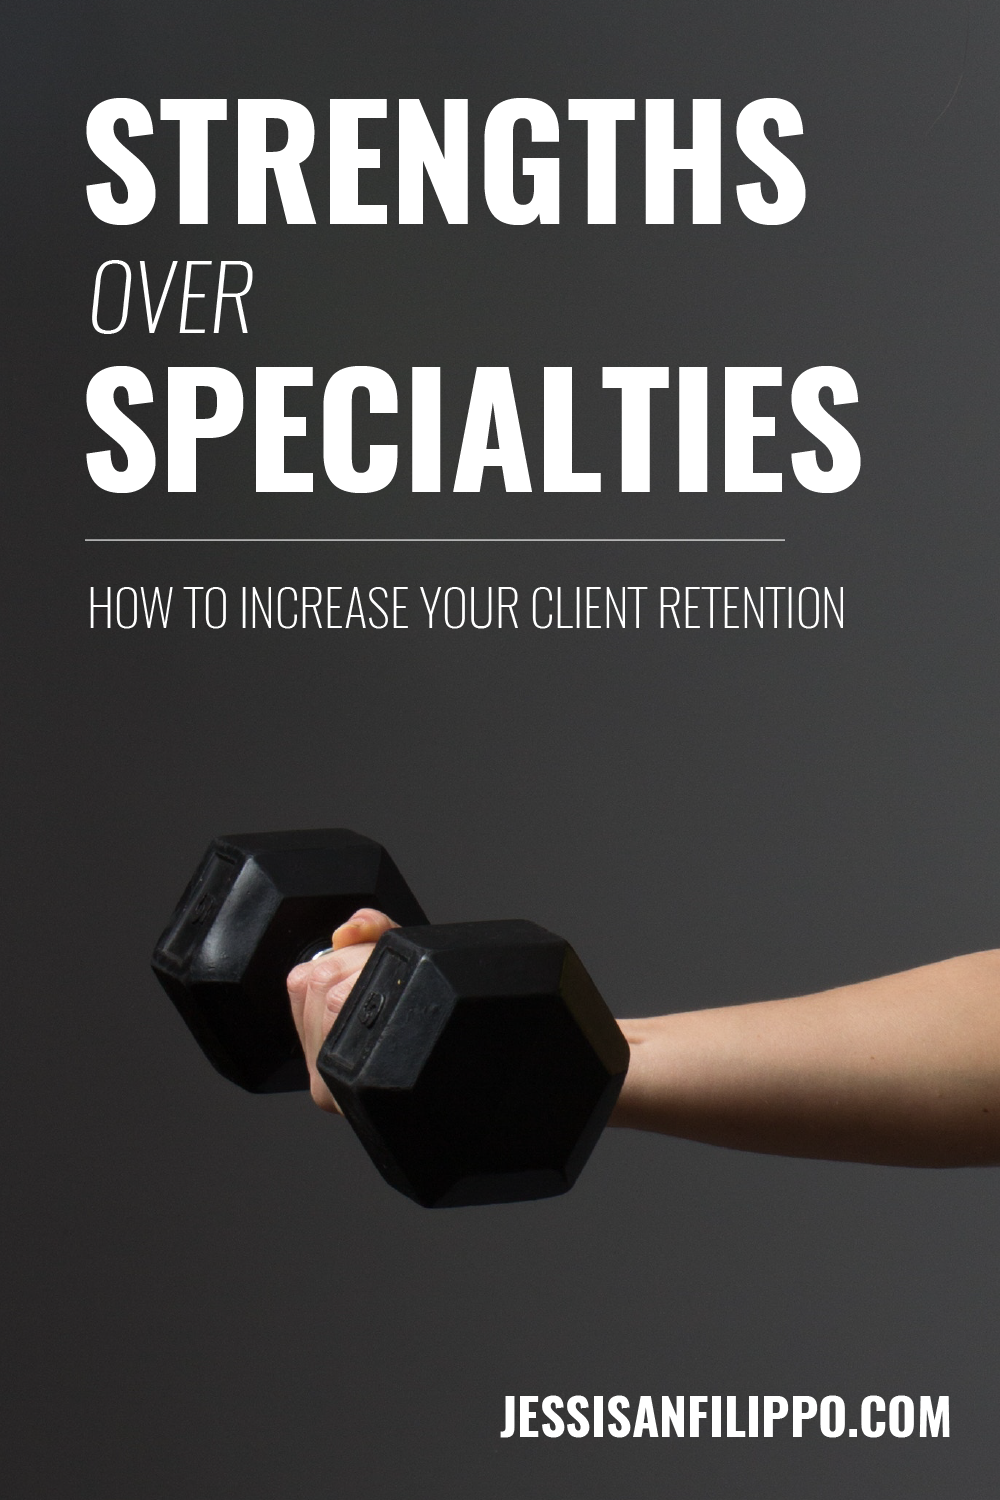 Strengths Over Specialties: How to Increase Your Client Retention